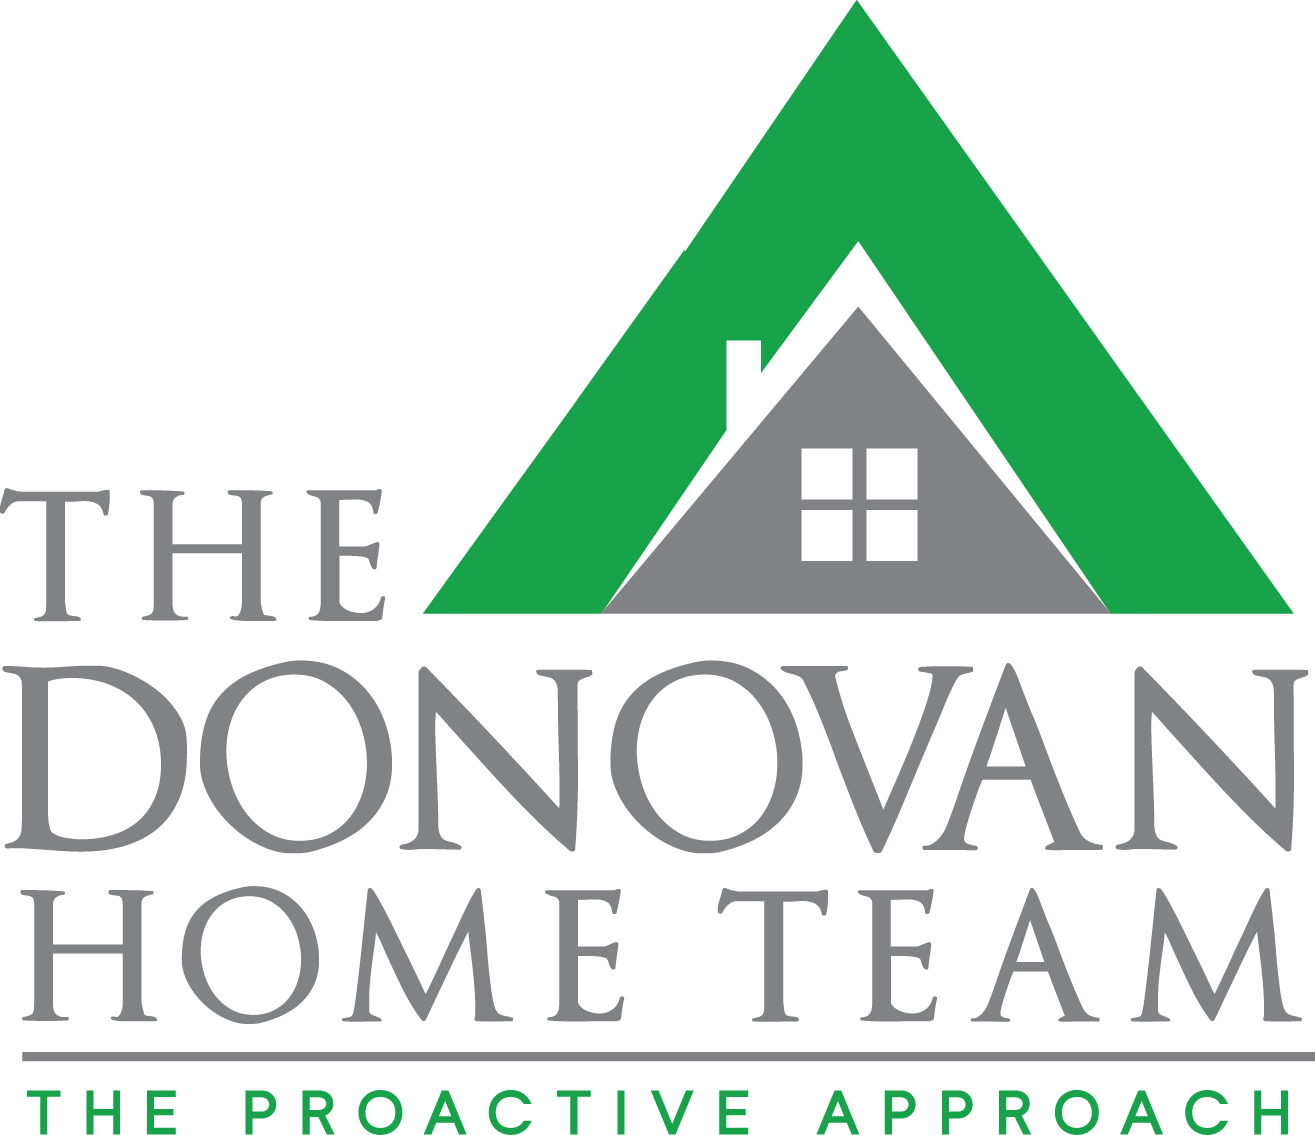 The Donovan Home Team uses Robert Miller Photography for real estate photography in Northern Virginia